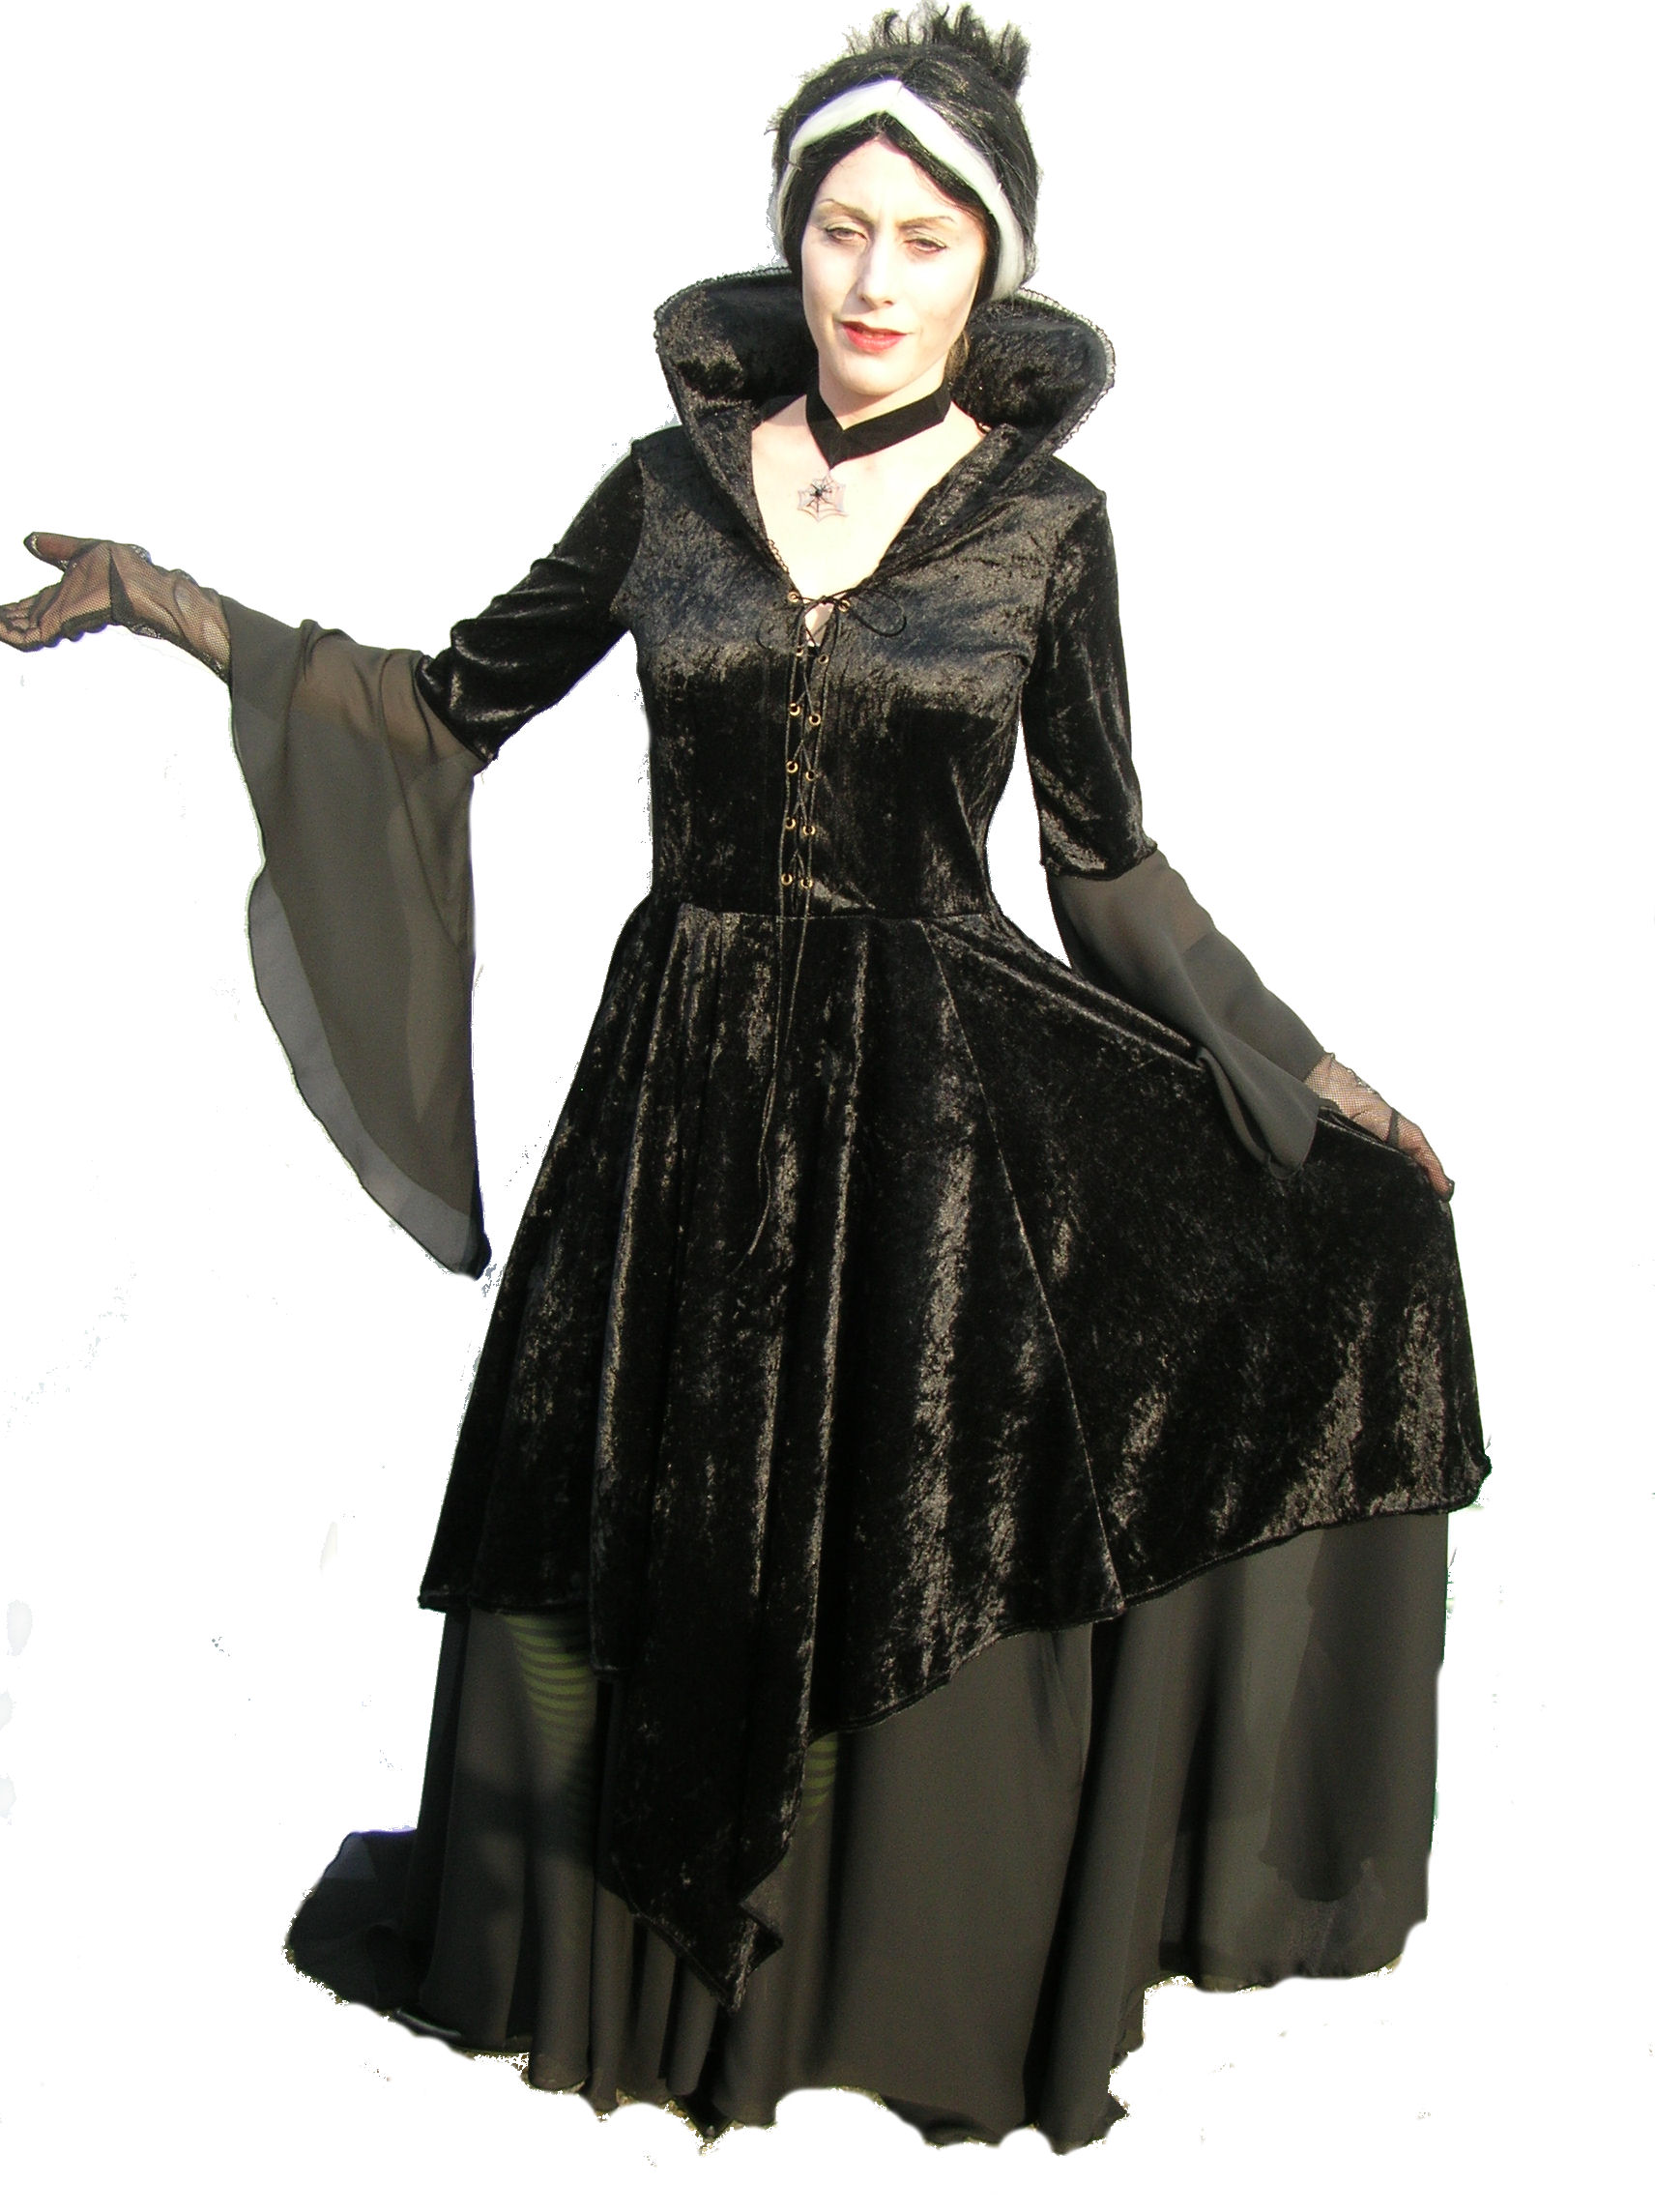 Black-Gothica-Dress-Round-Stand-up-collar